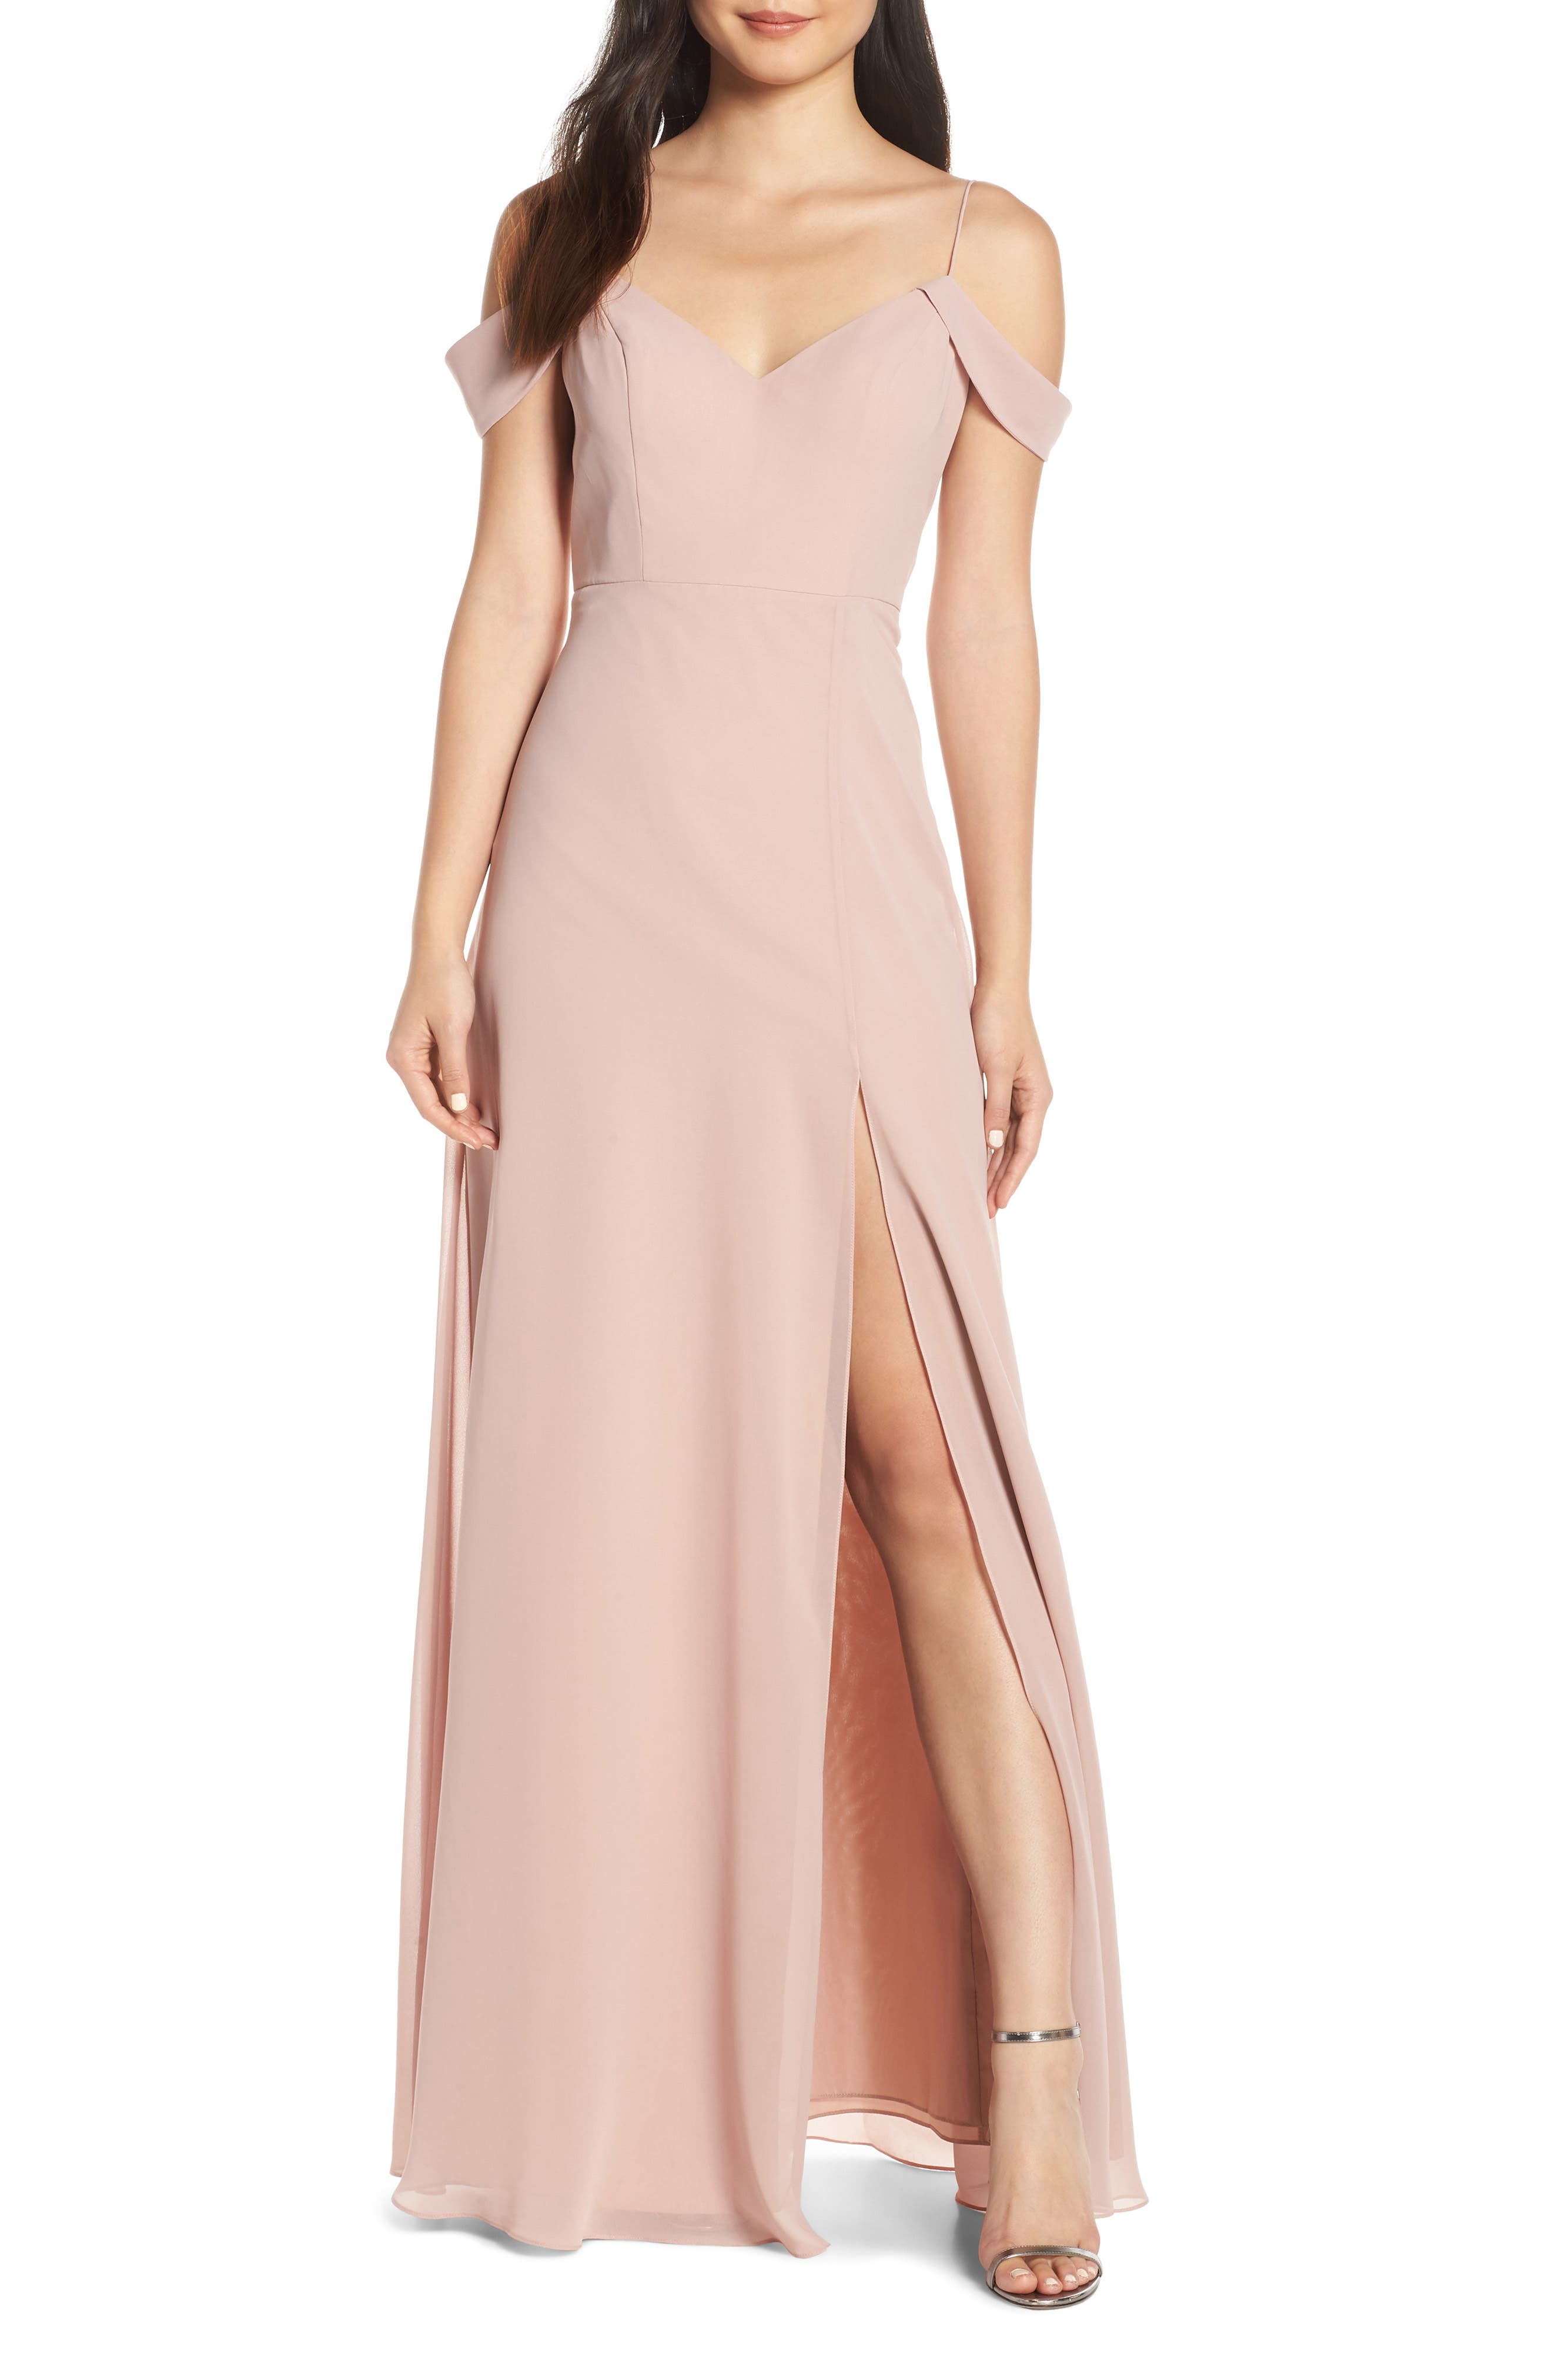 Jenny Yoo Priya Cold Shoulder Chiffon Evening Dress, Pink